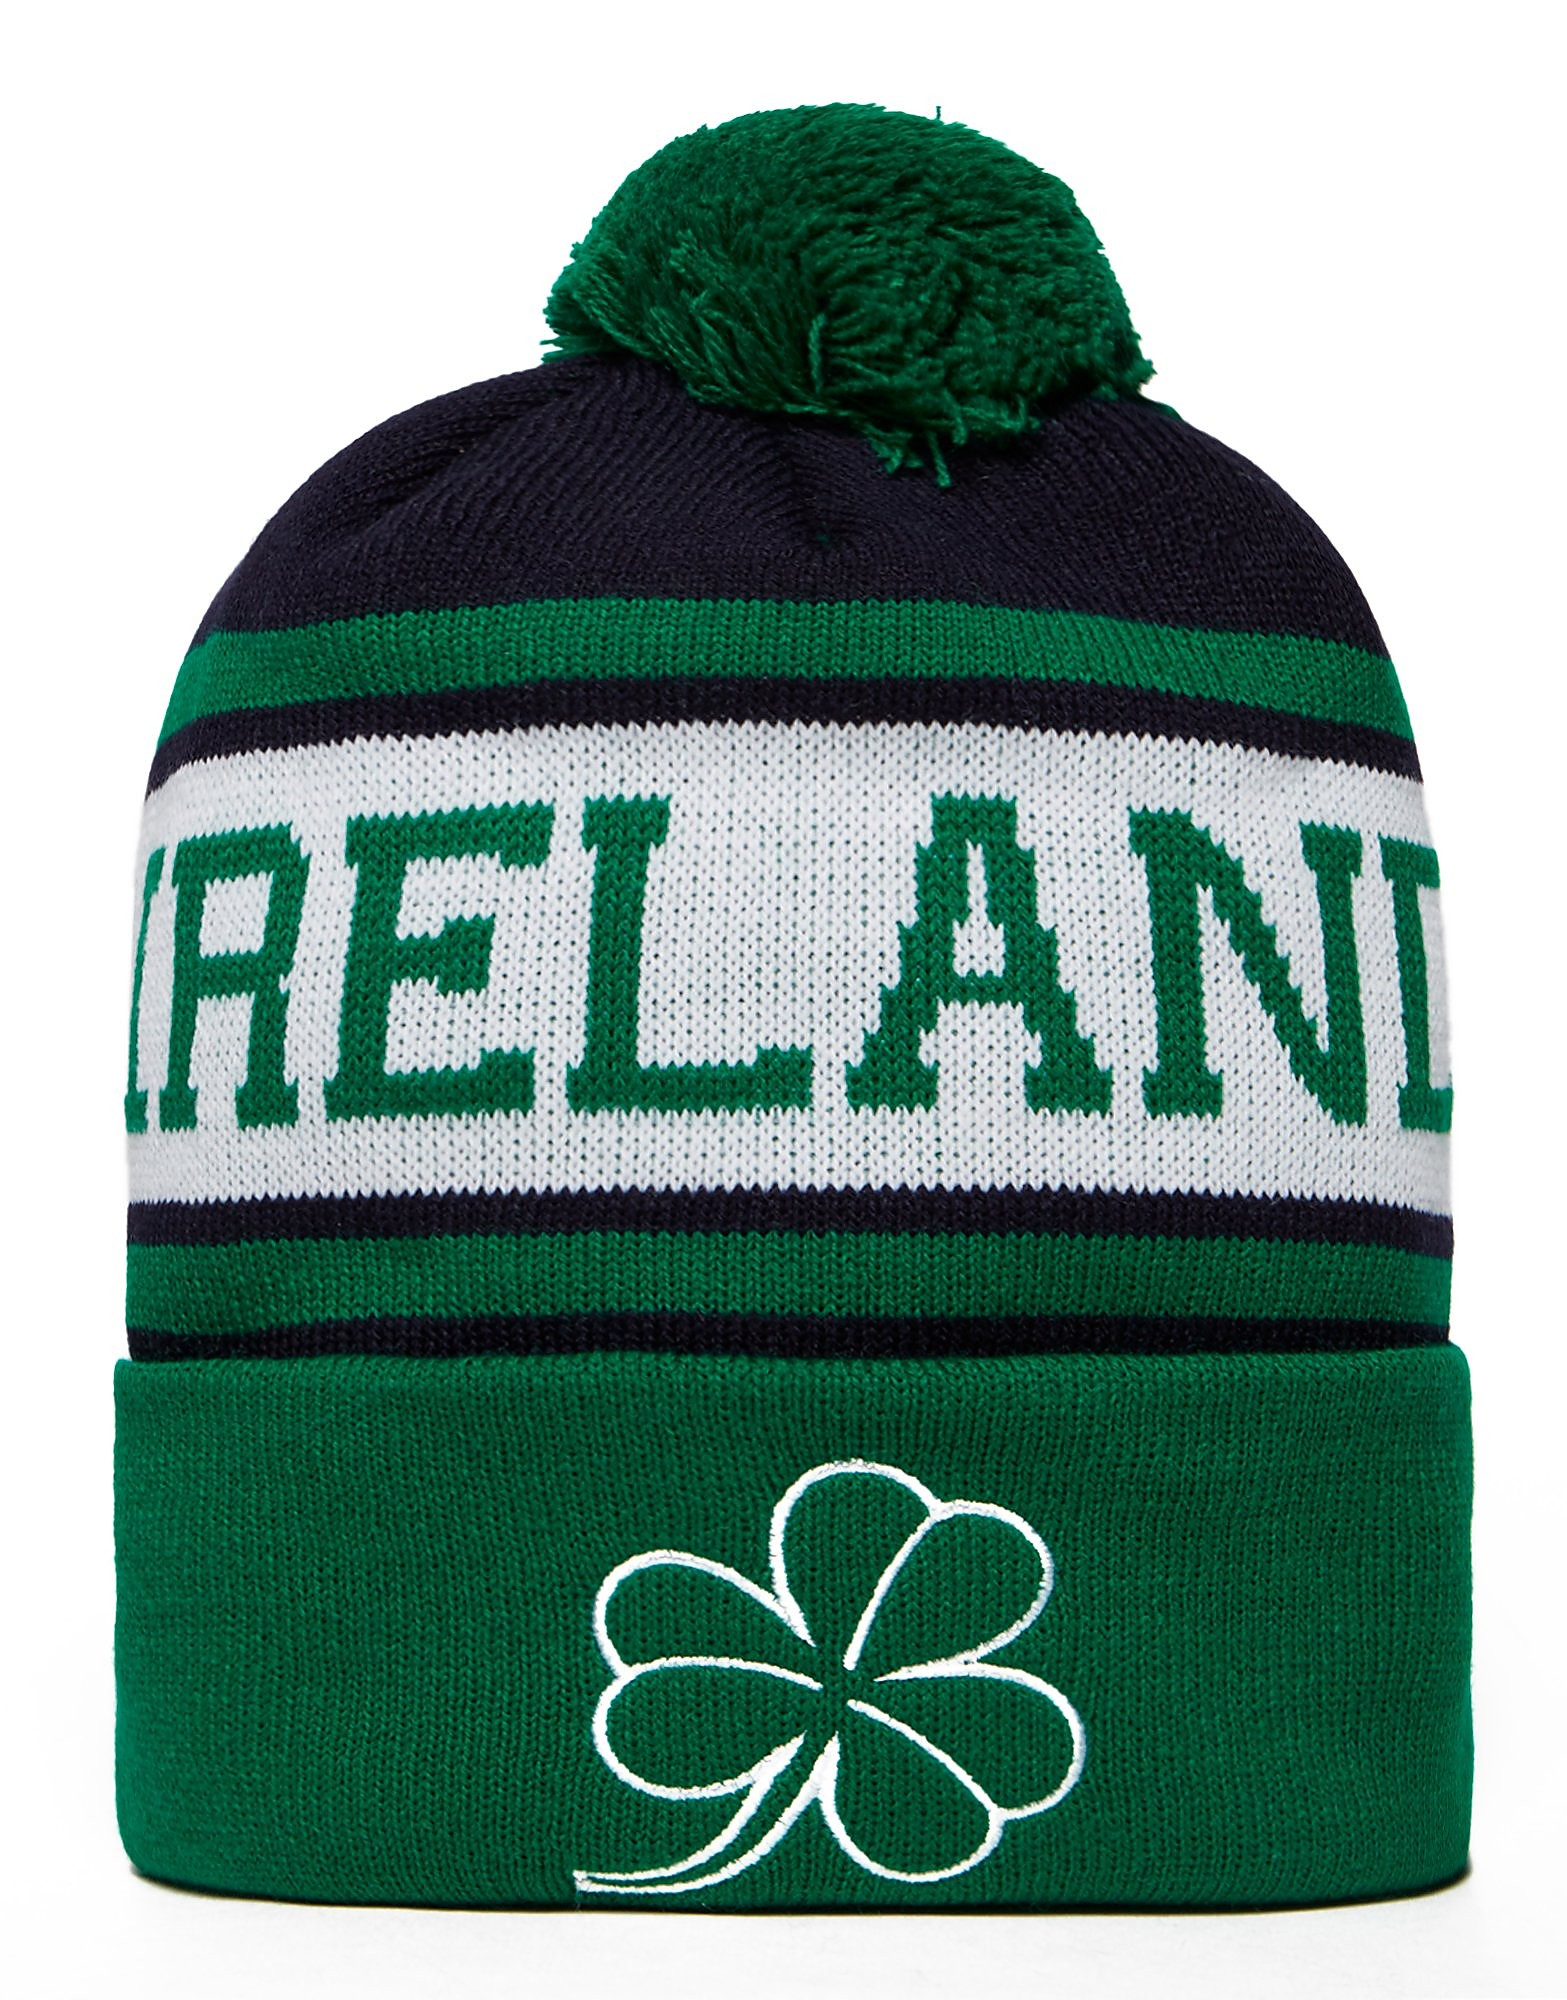 Official Team Ireland Beanie